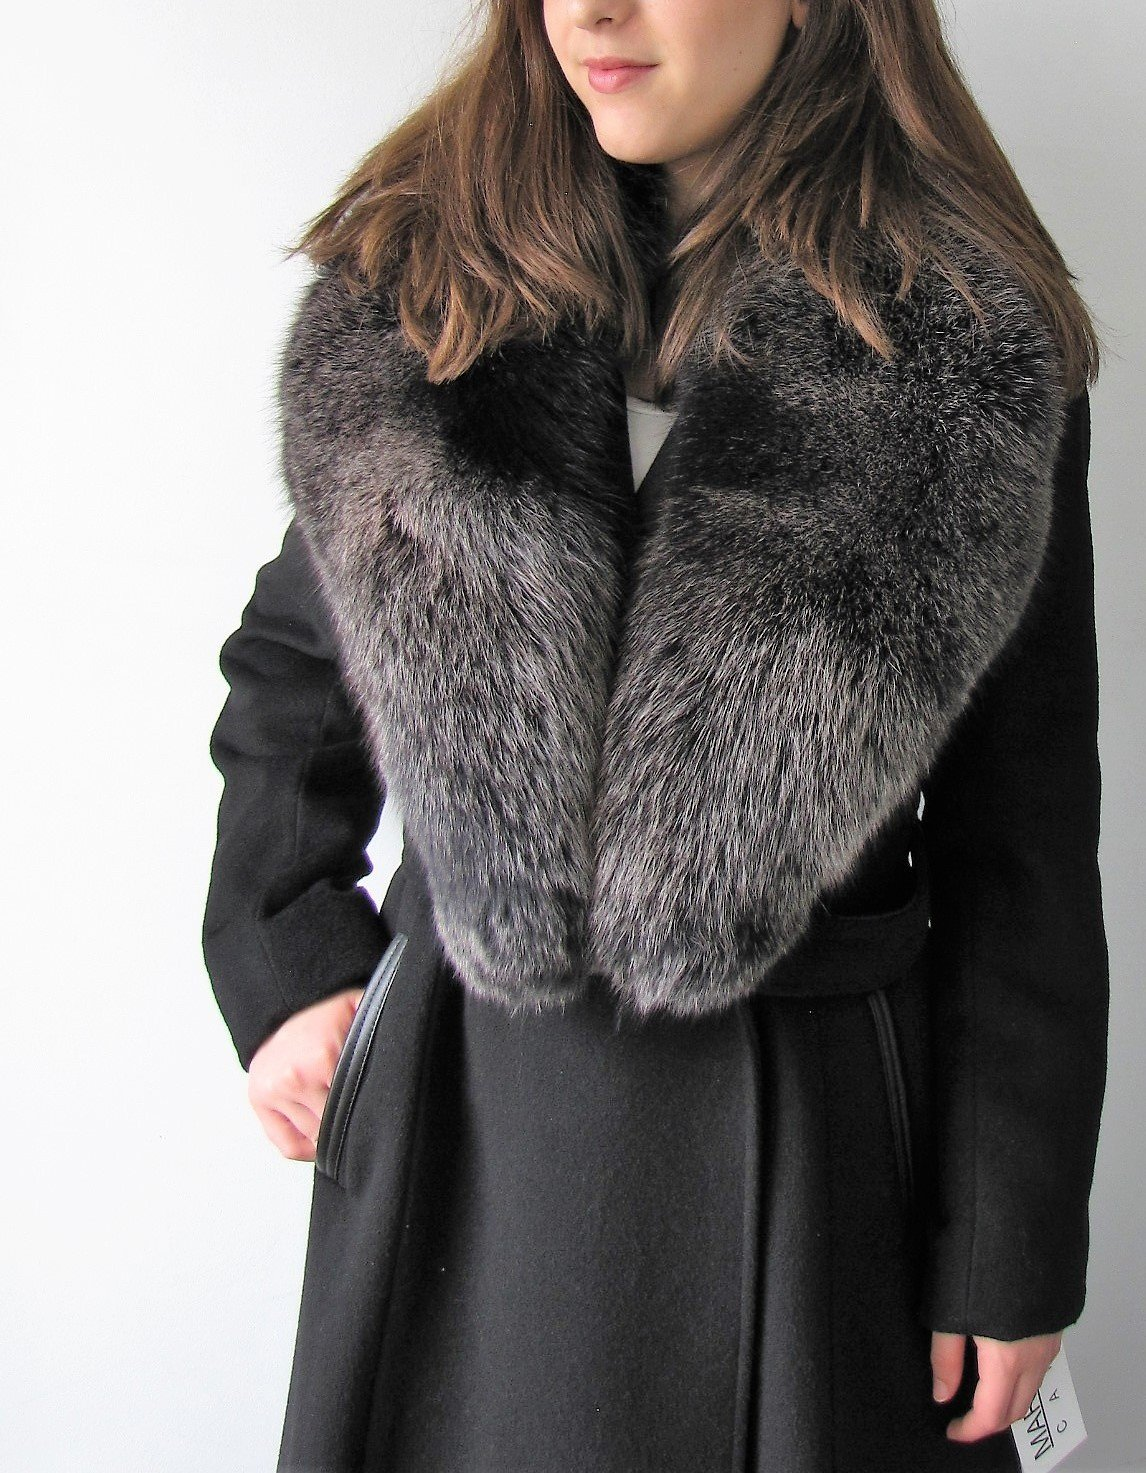 https://0901.nccdn.net/4_2/000/000/06c/bba/SJ4430-Black-Fur-Collar-5A1-1146x1473.jpg